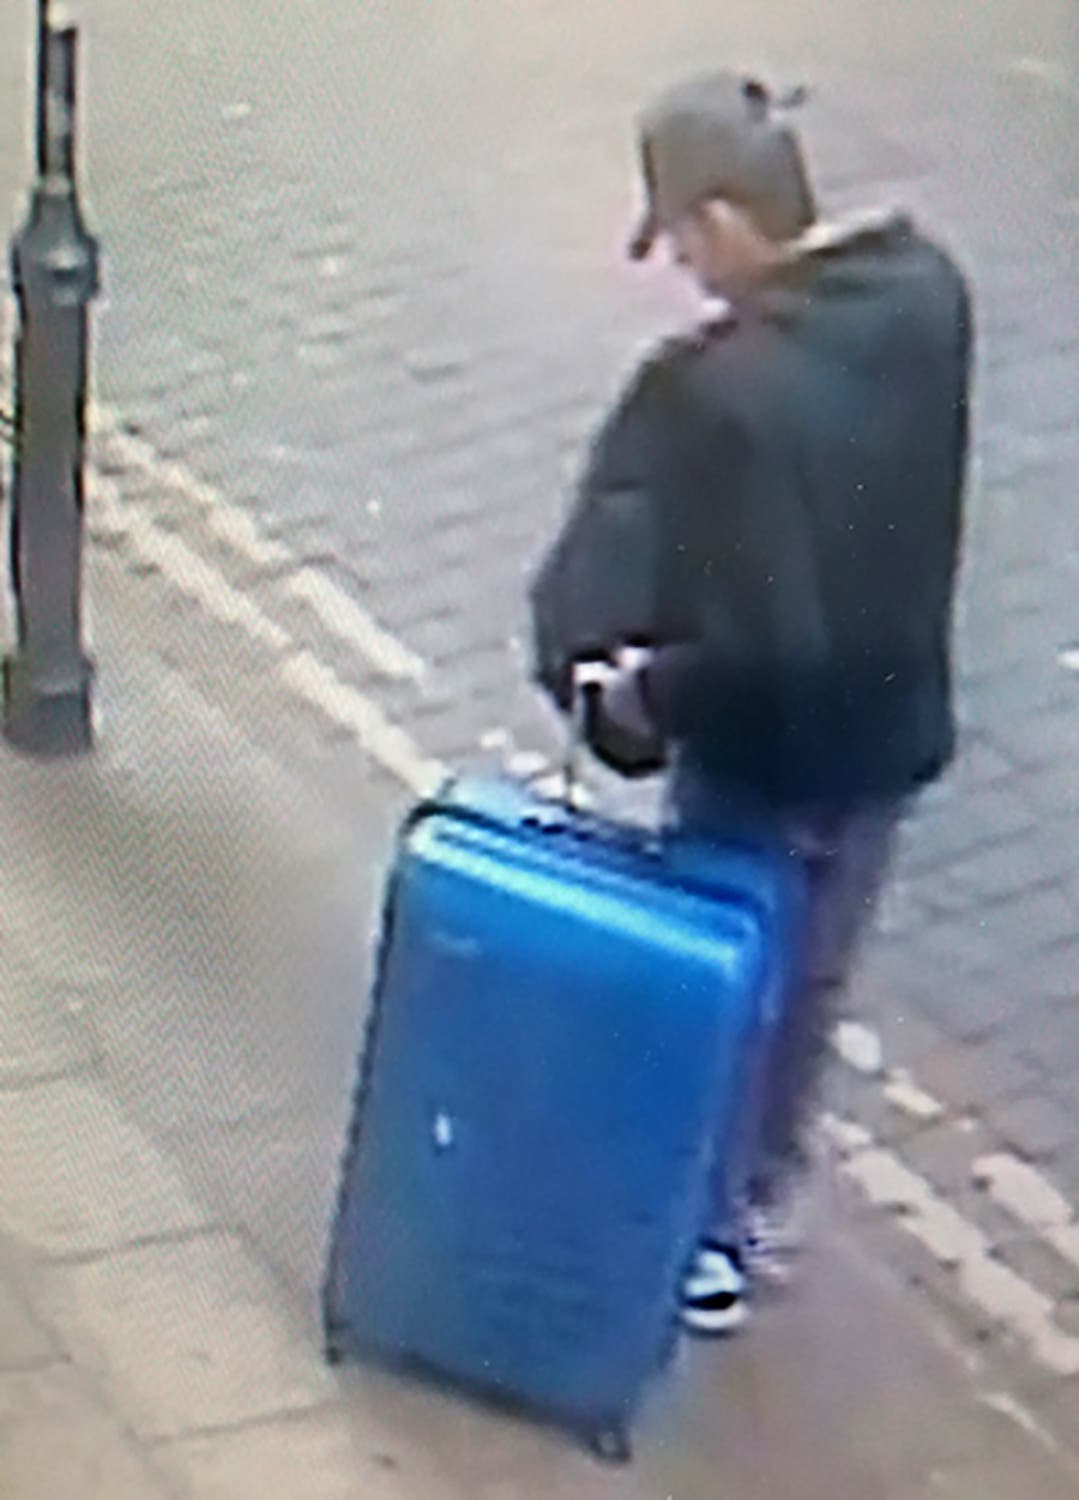 A handout CCTV photograph released by Greater Manchester Police on May 29, 2017, shows Salman Abedi with a blue suitcase in the center of Manchester on the day he committed the attack on the Manchester Arena on May 22, 2017 that killed 22 people. (AFP)